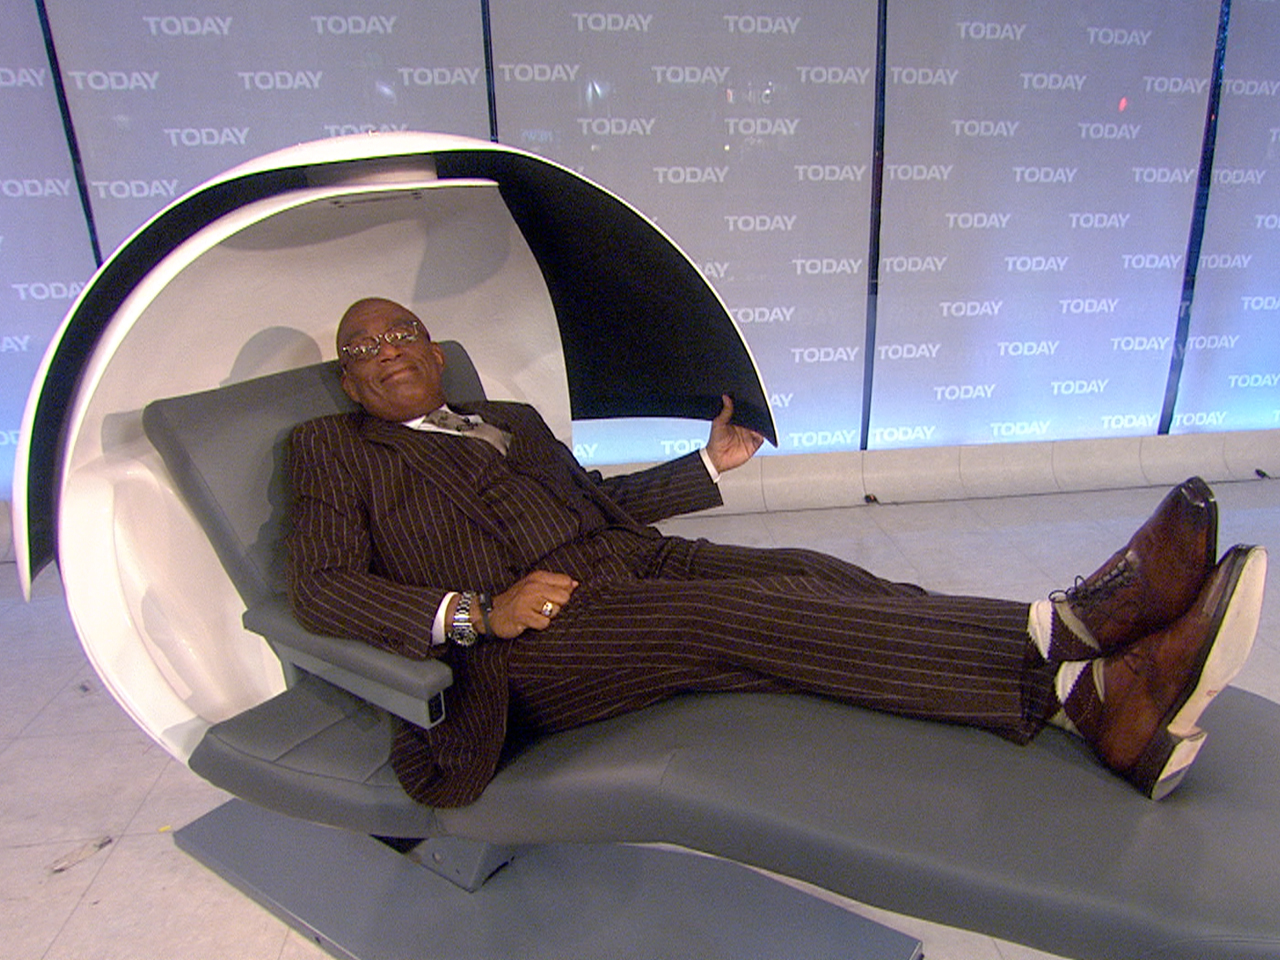 Nap Rooms Encourage Sleeping On The Job To Boost Productivity